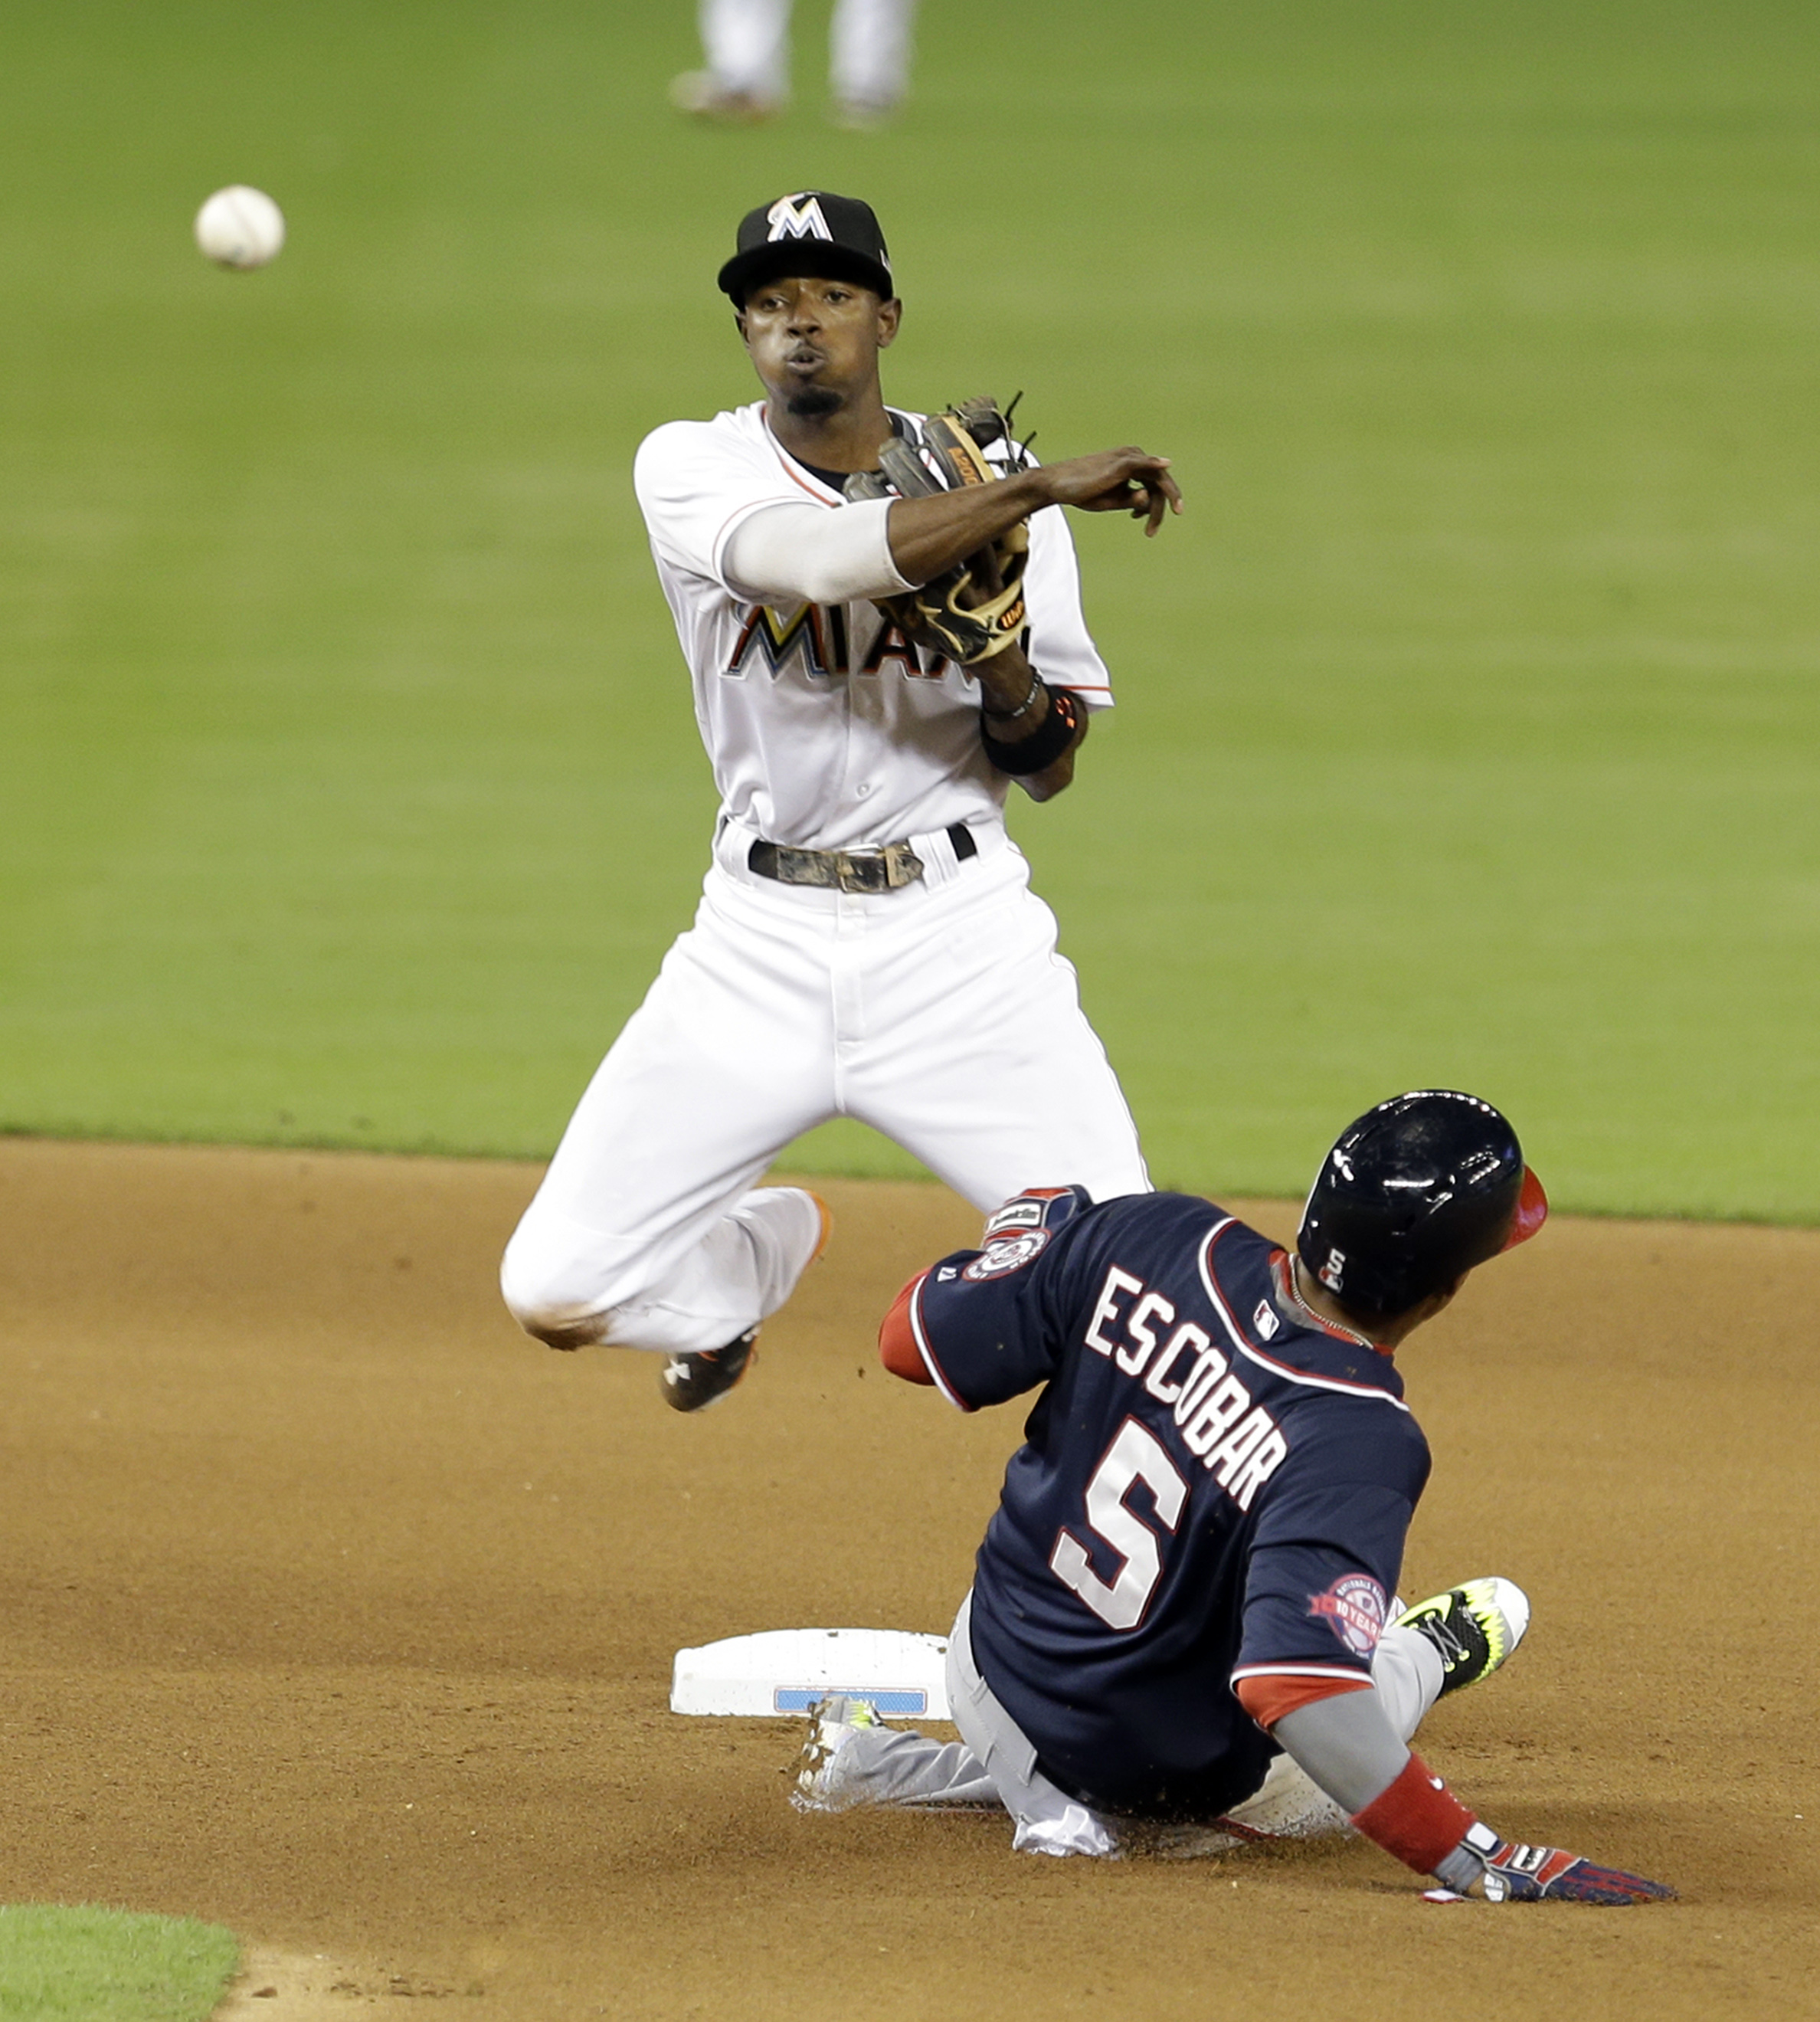 Washington Nationals' Yunel Escobar (5) is forced out at second base as Miami Marlins second baseman Dee Gordon (9) throws to first base to complete the double play in the fourth inning of a baseball game Friday, Sept. 11, 2015, in Miami. Ian Desmond was